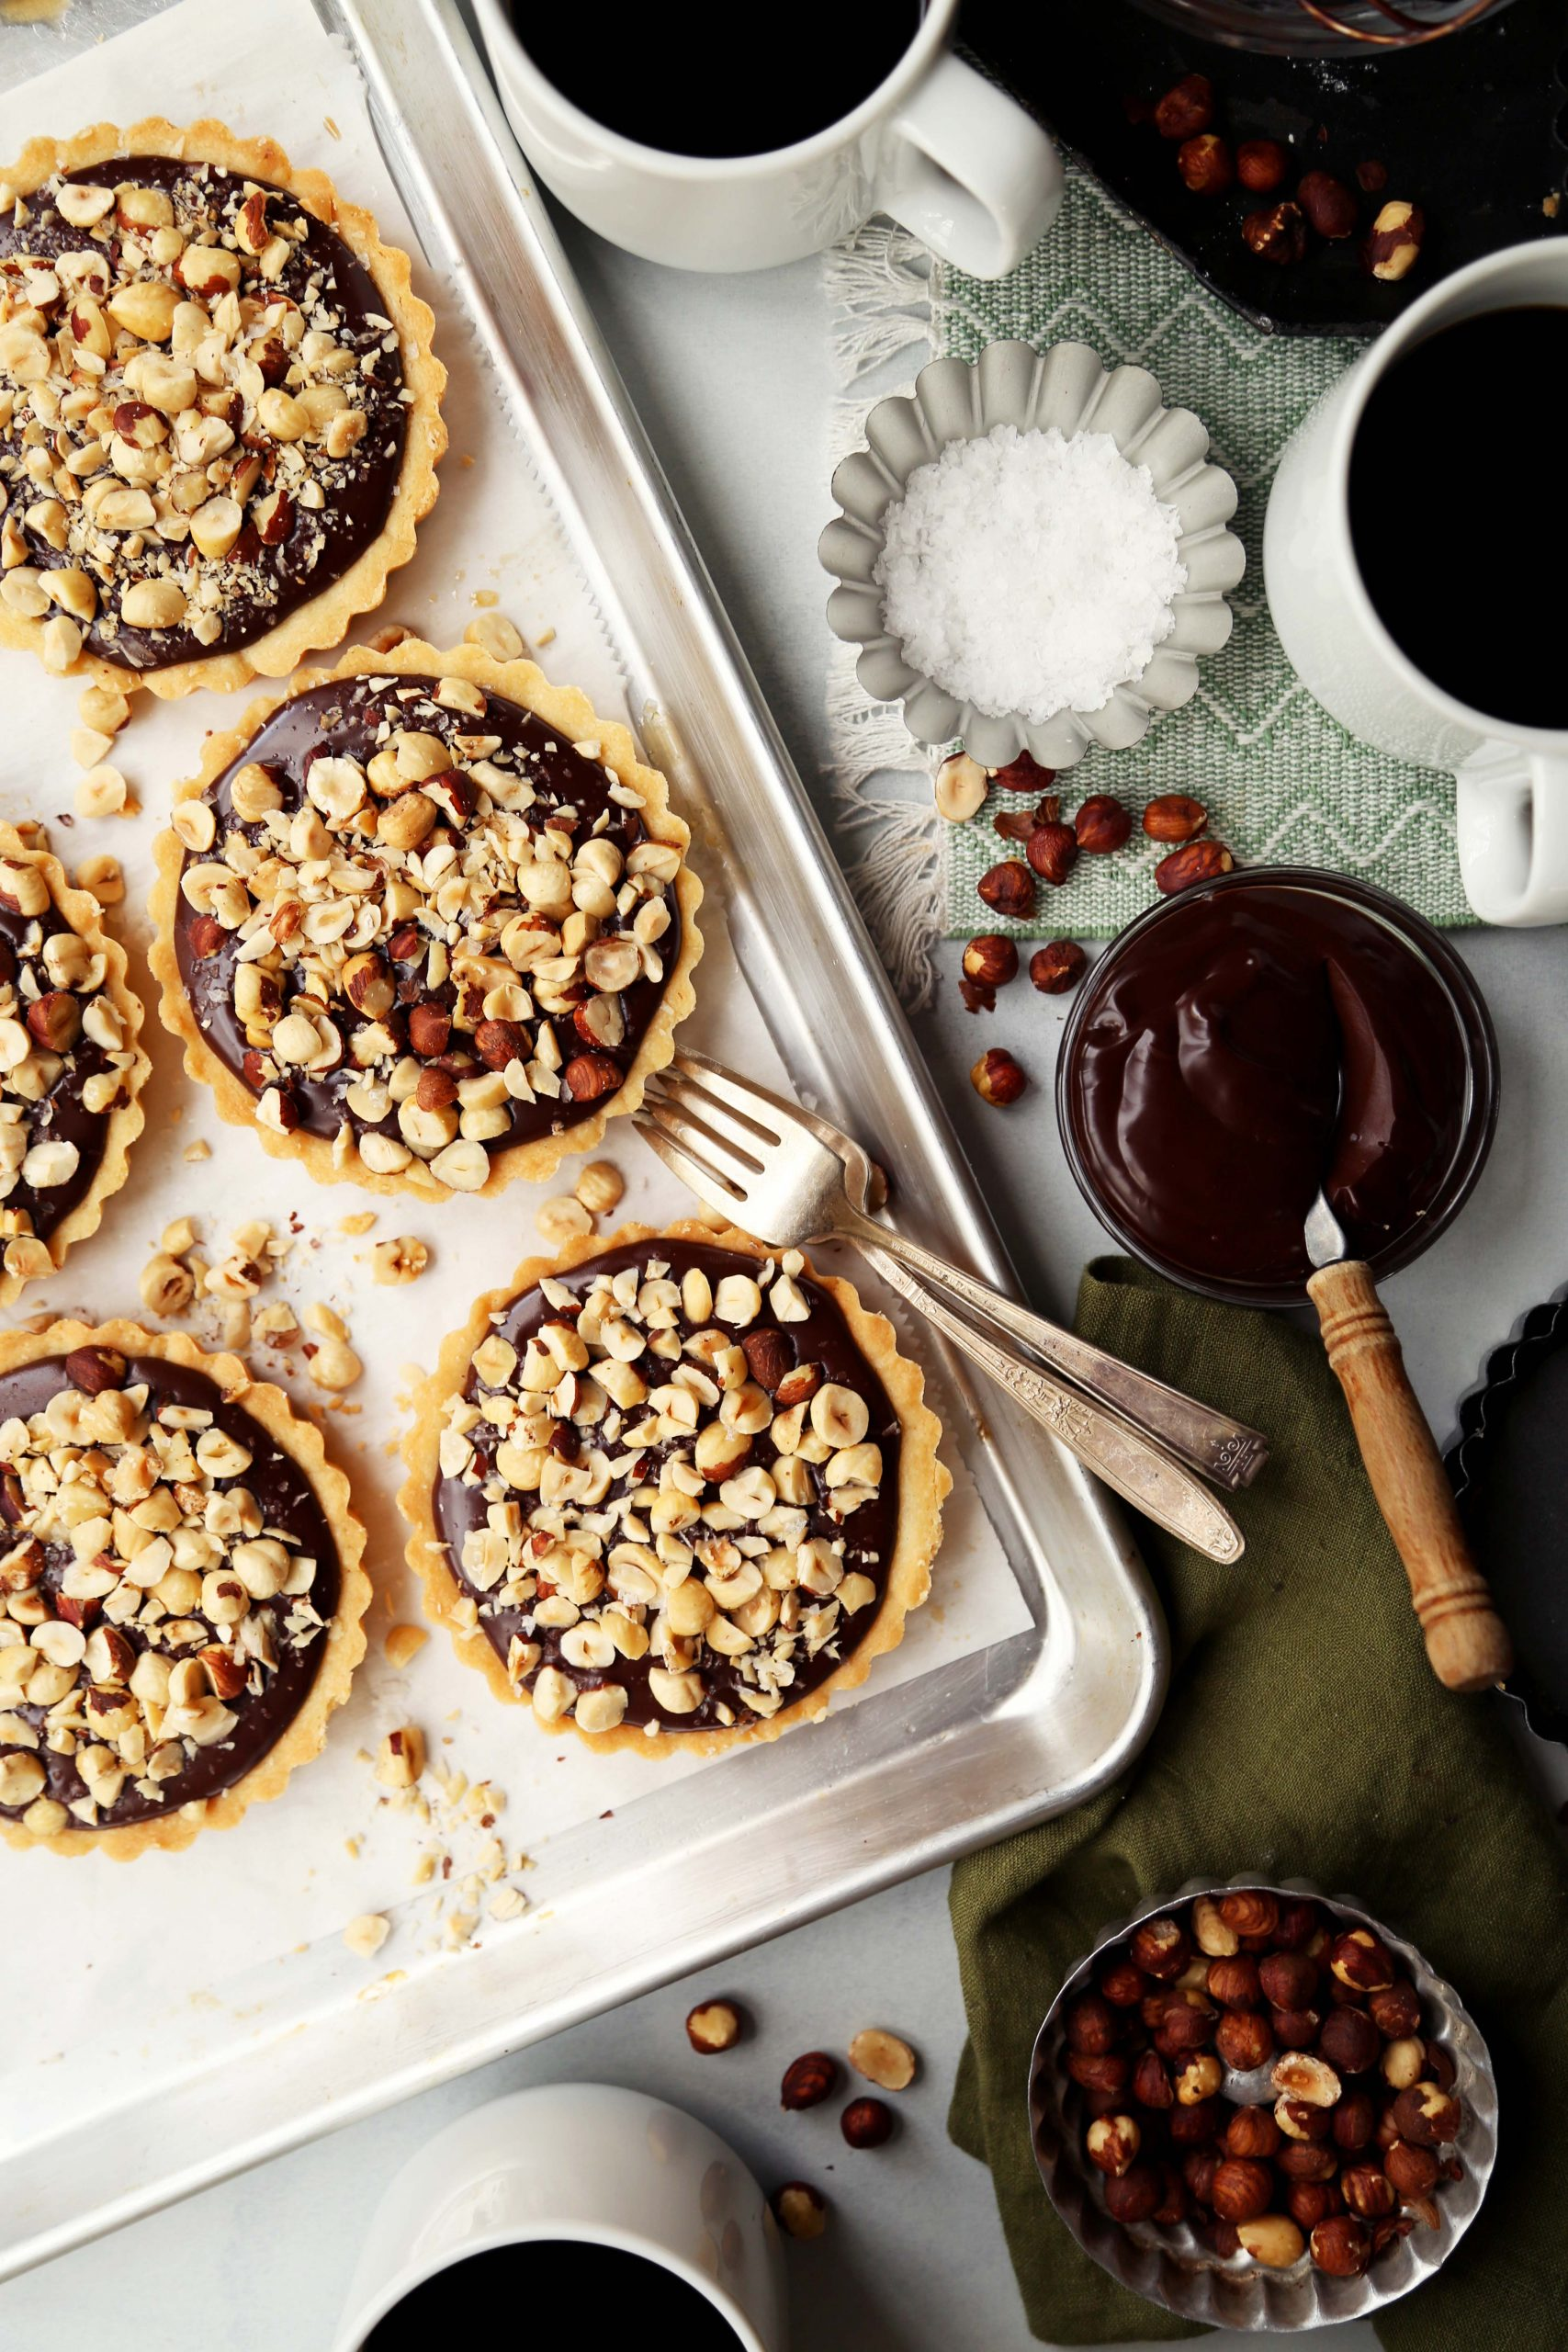 Chocolate Hazelnut Tarts